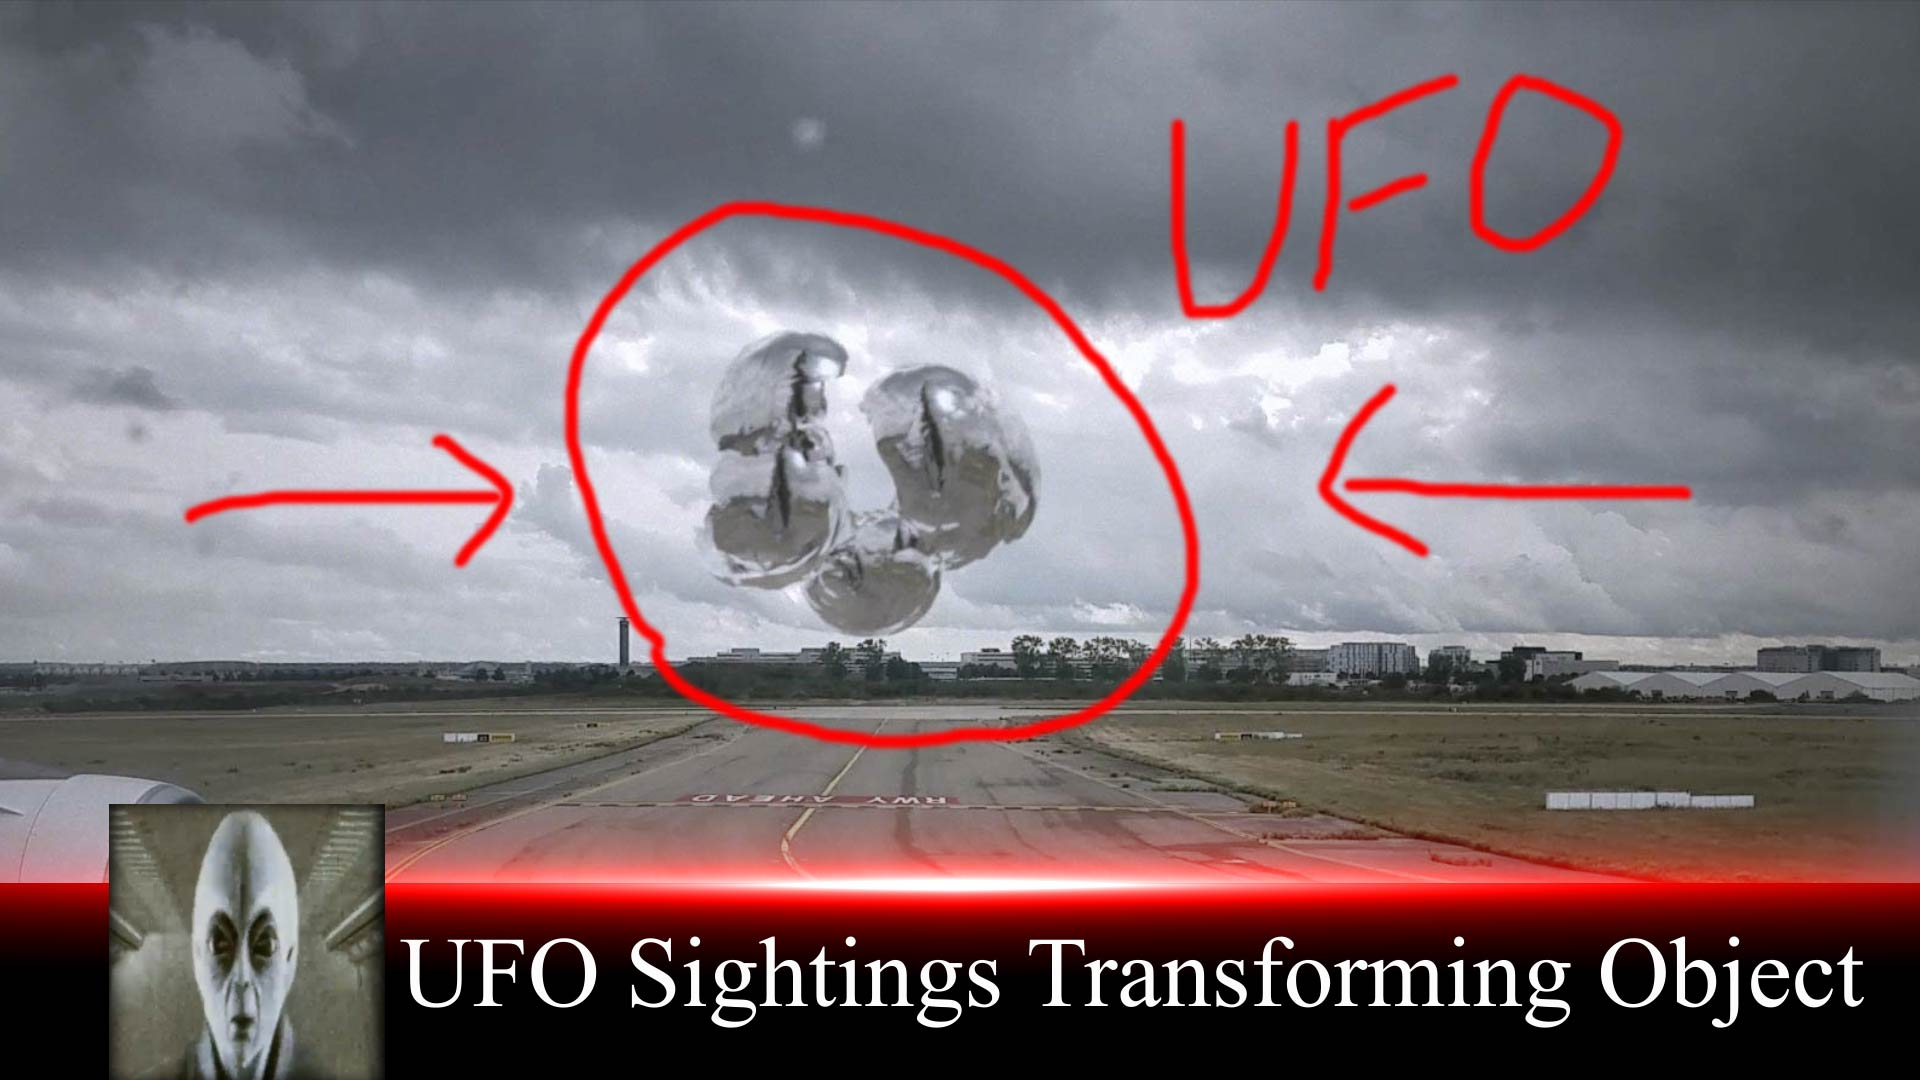 UFO Sightings Transforming Object May 10th 2018